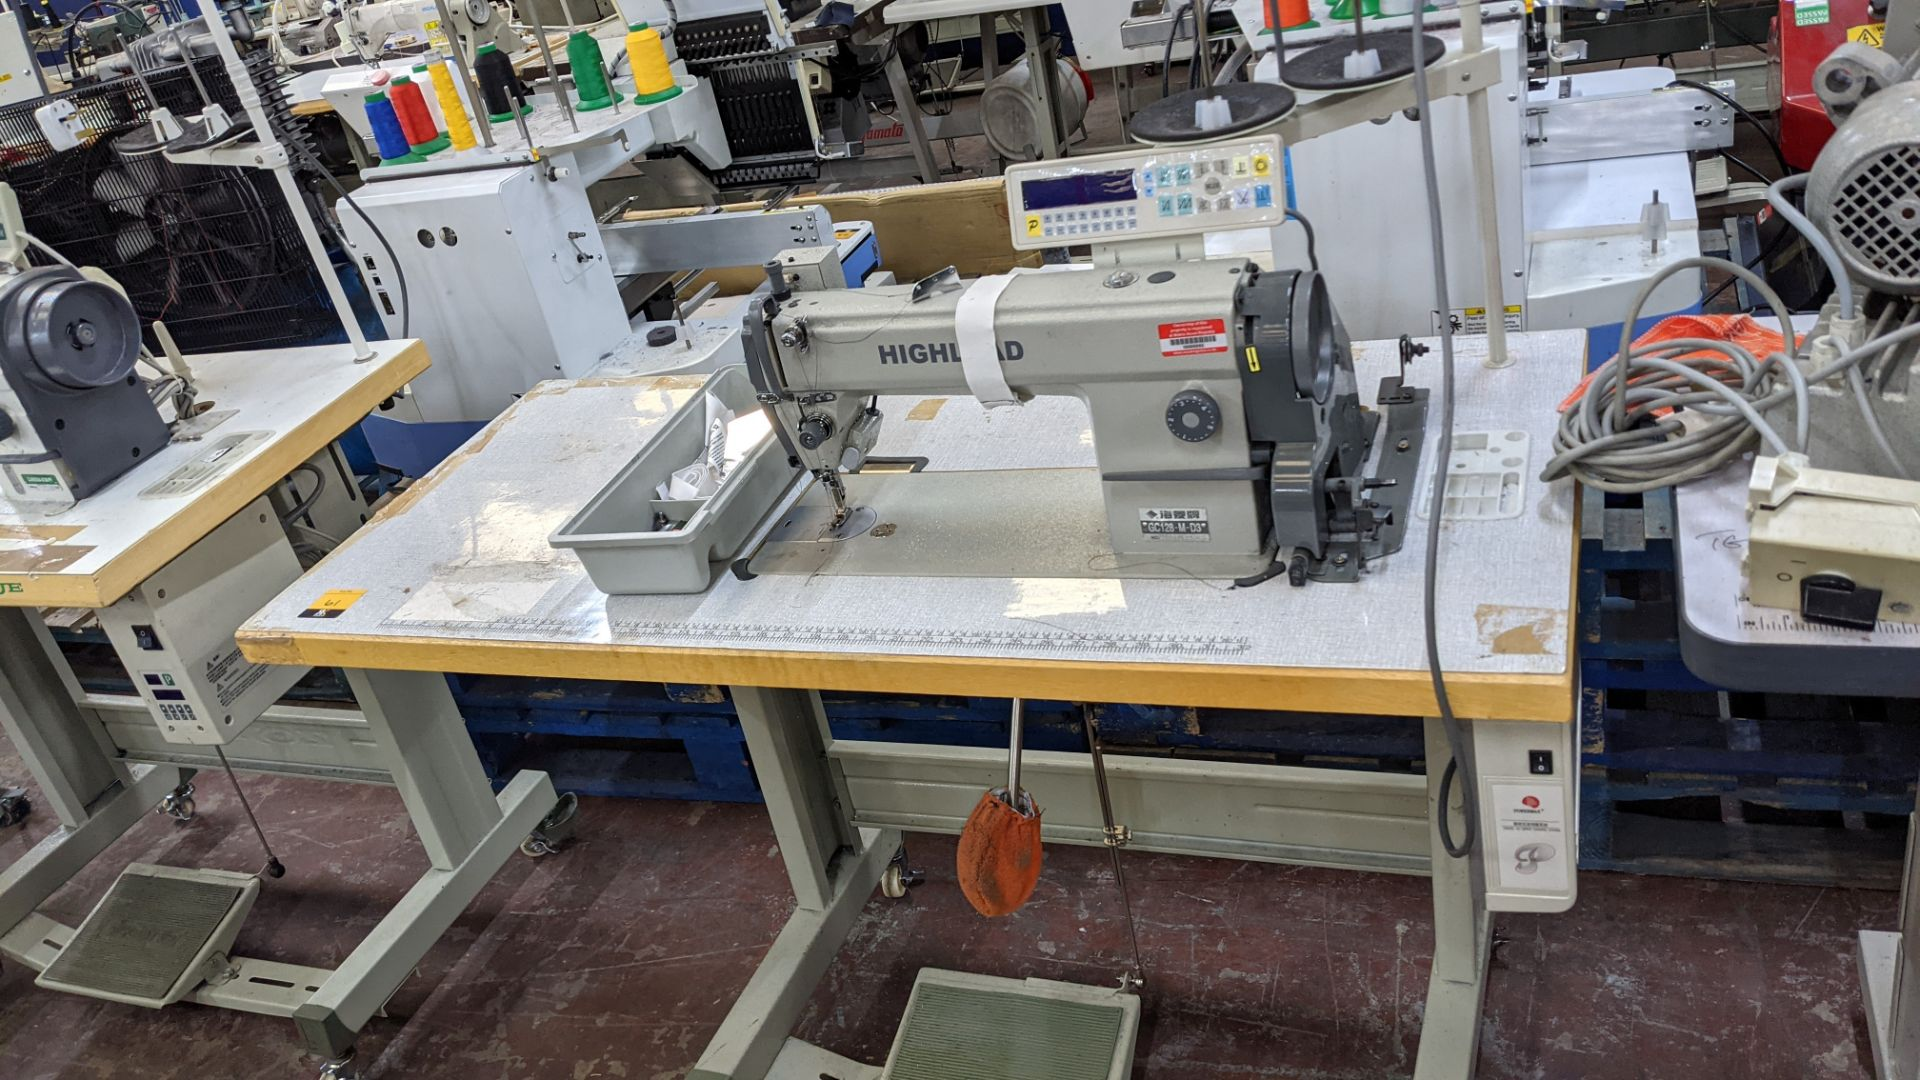 Highlead model GC128-M-D3 sewing machine - Image 2 of 18